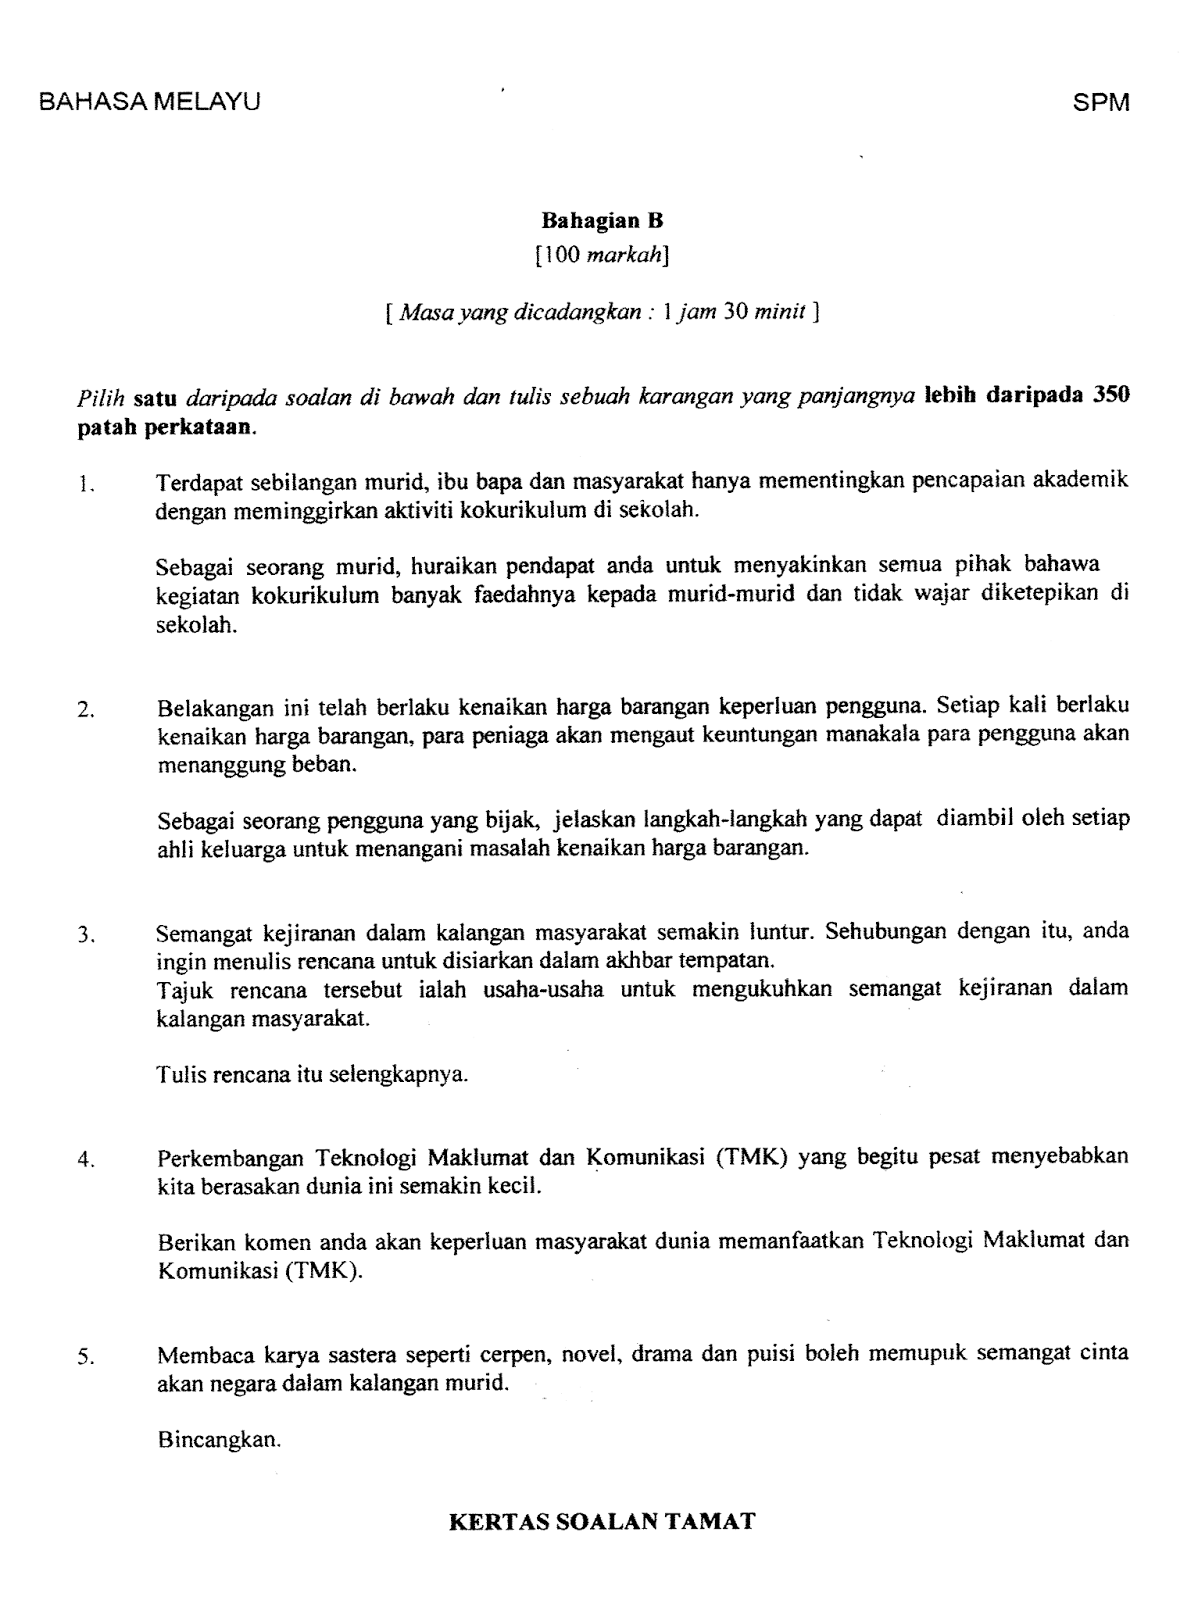 essay spm 2014 Spm essay module spm essay directed writing year 2011/ 2012 informal letters writing letters the right way this week we will take a look at letter writing generally, students are taught to write two types of letters - formal letters and informal letters.